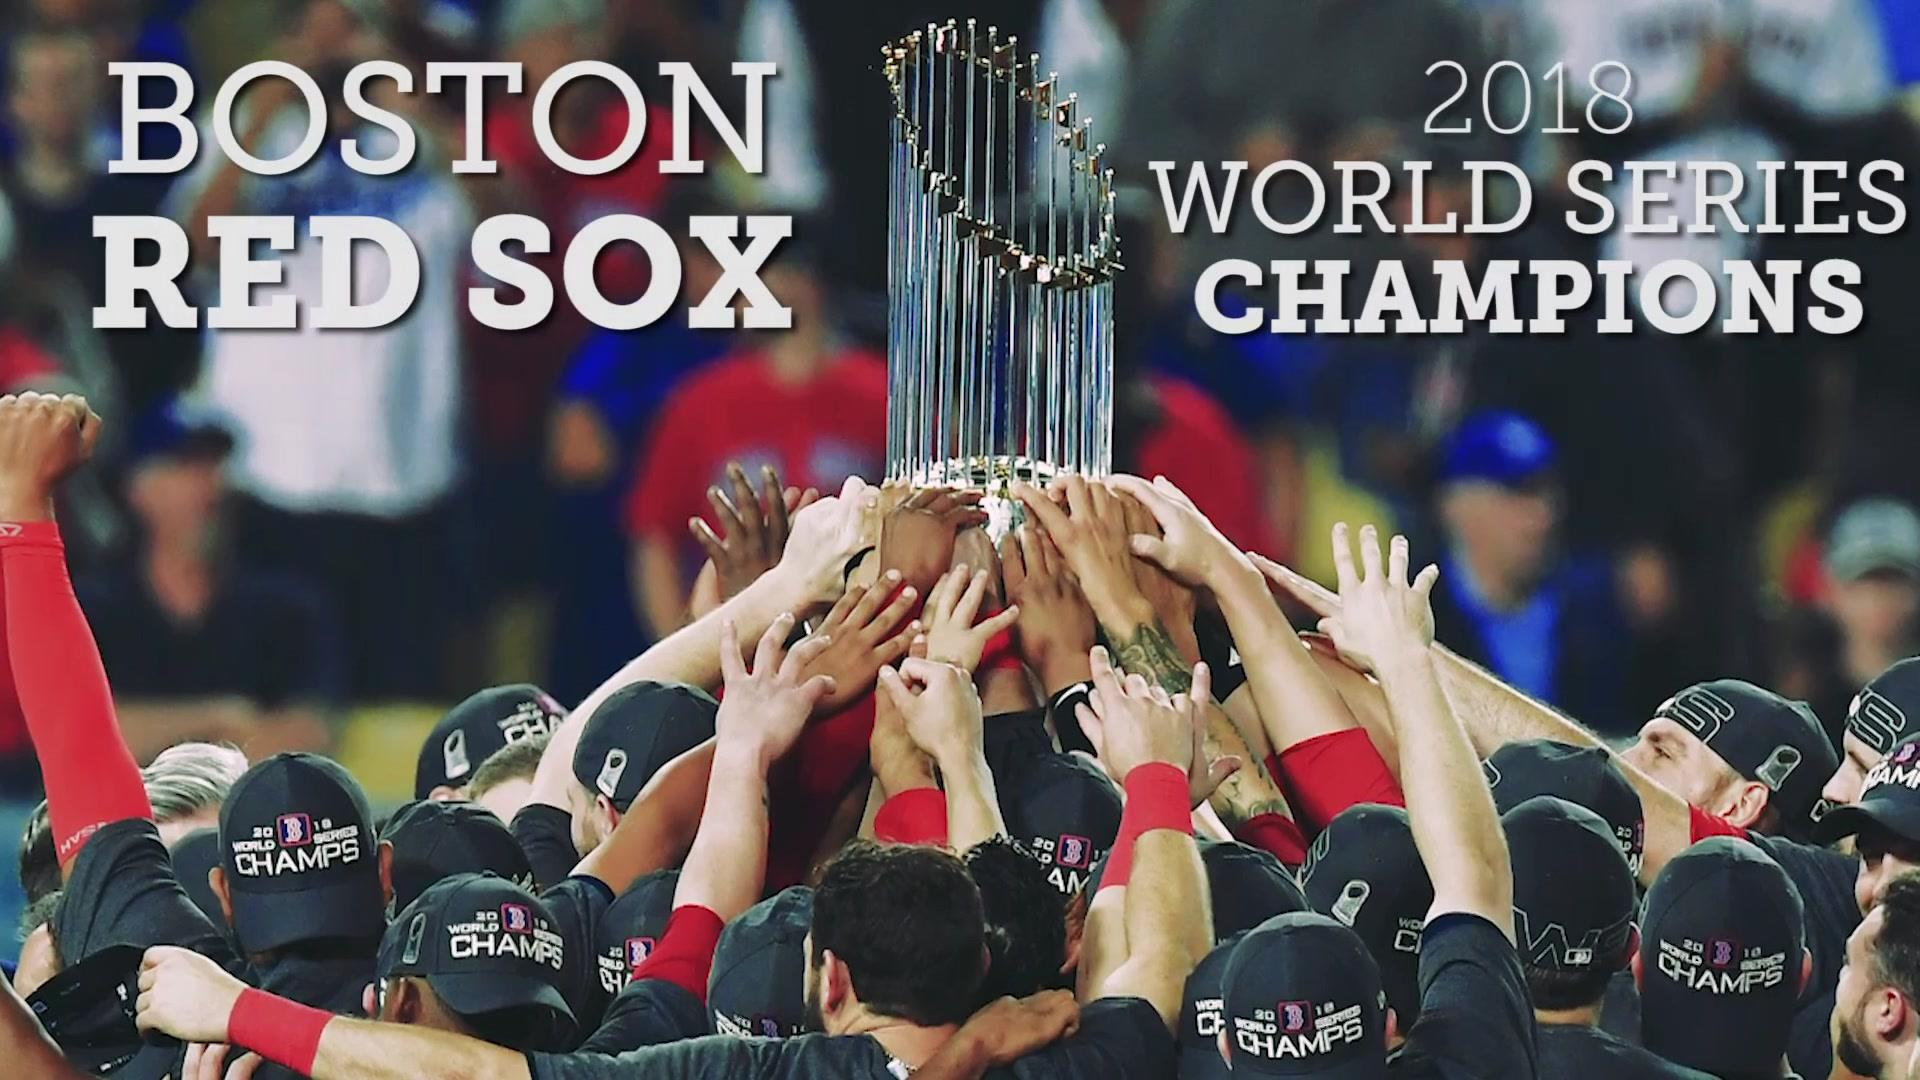 Red Sox defeat Dodgers in Game 5 to win the World Series NBC 1920x1080